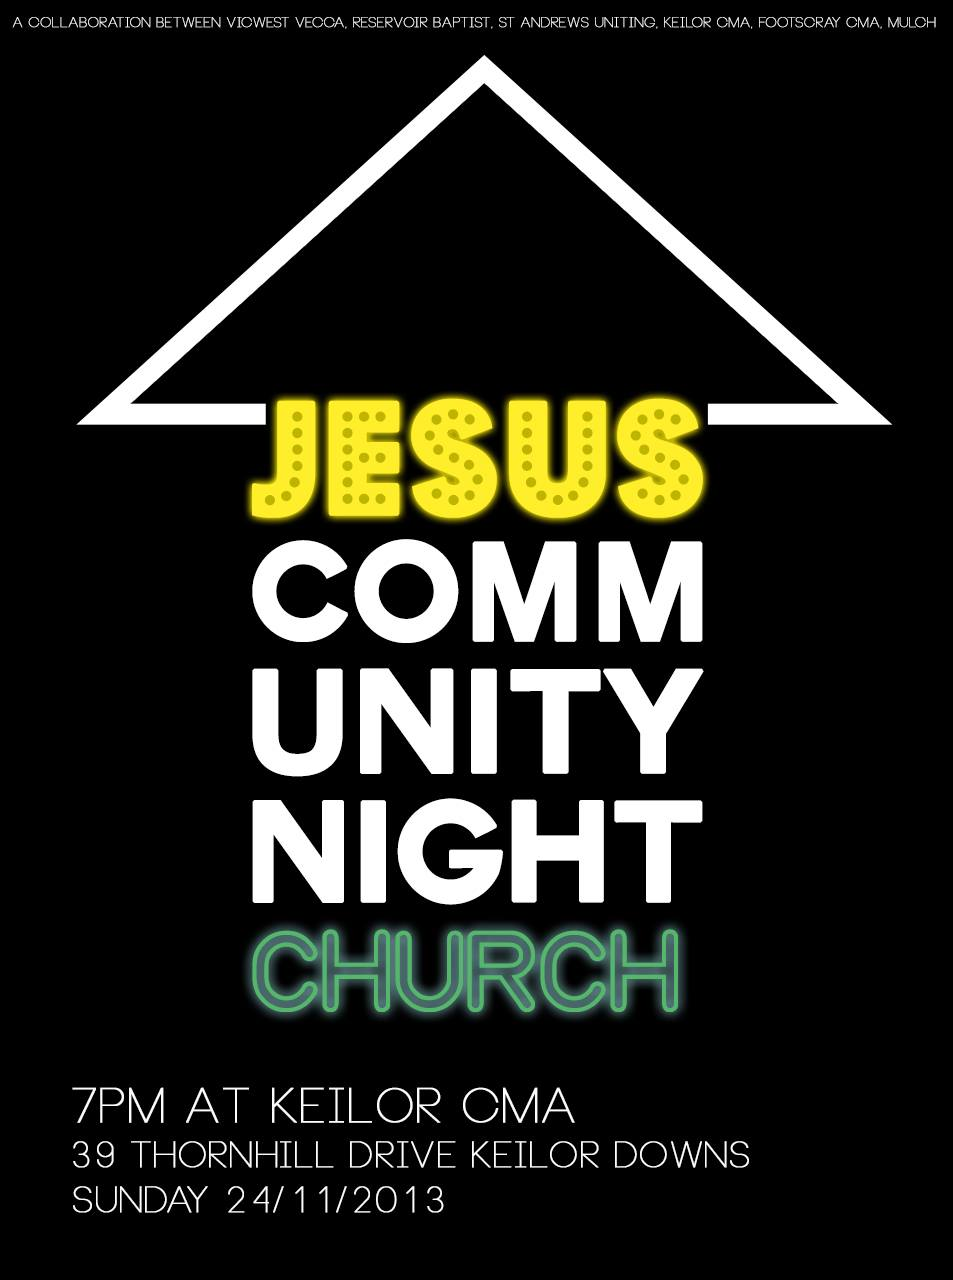 Jesus Community Night Church - Keilor CMA